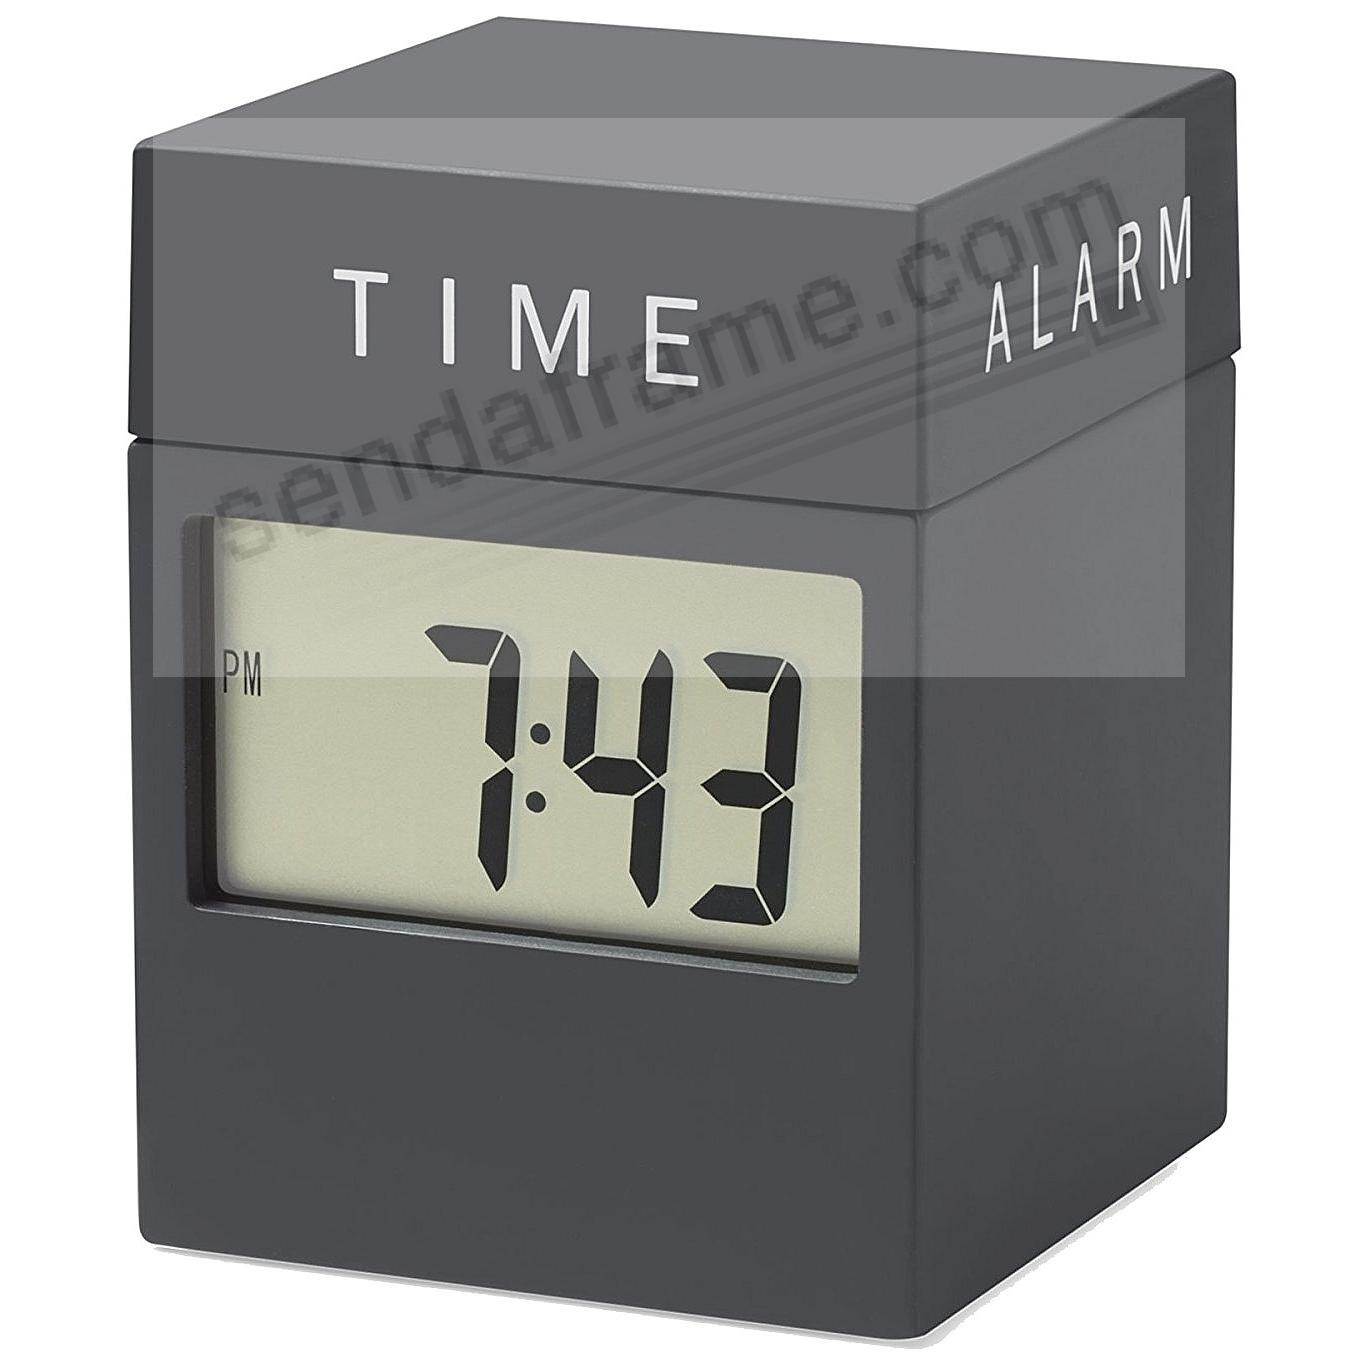 The original 4-in-1 TWIST CLOCK from the MoMA® Collection